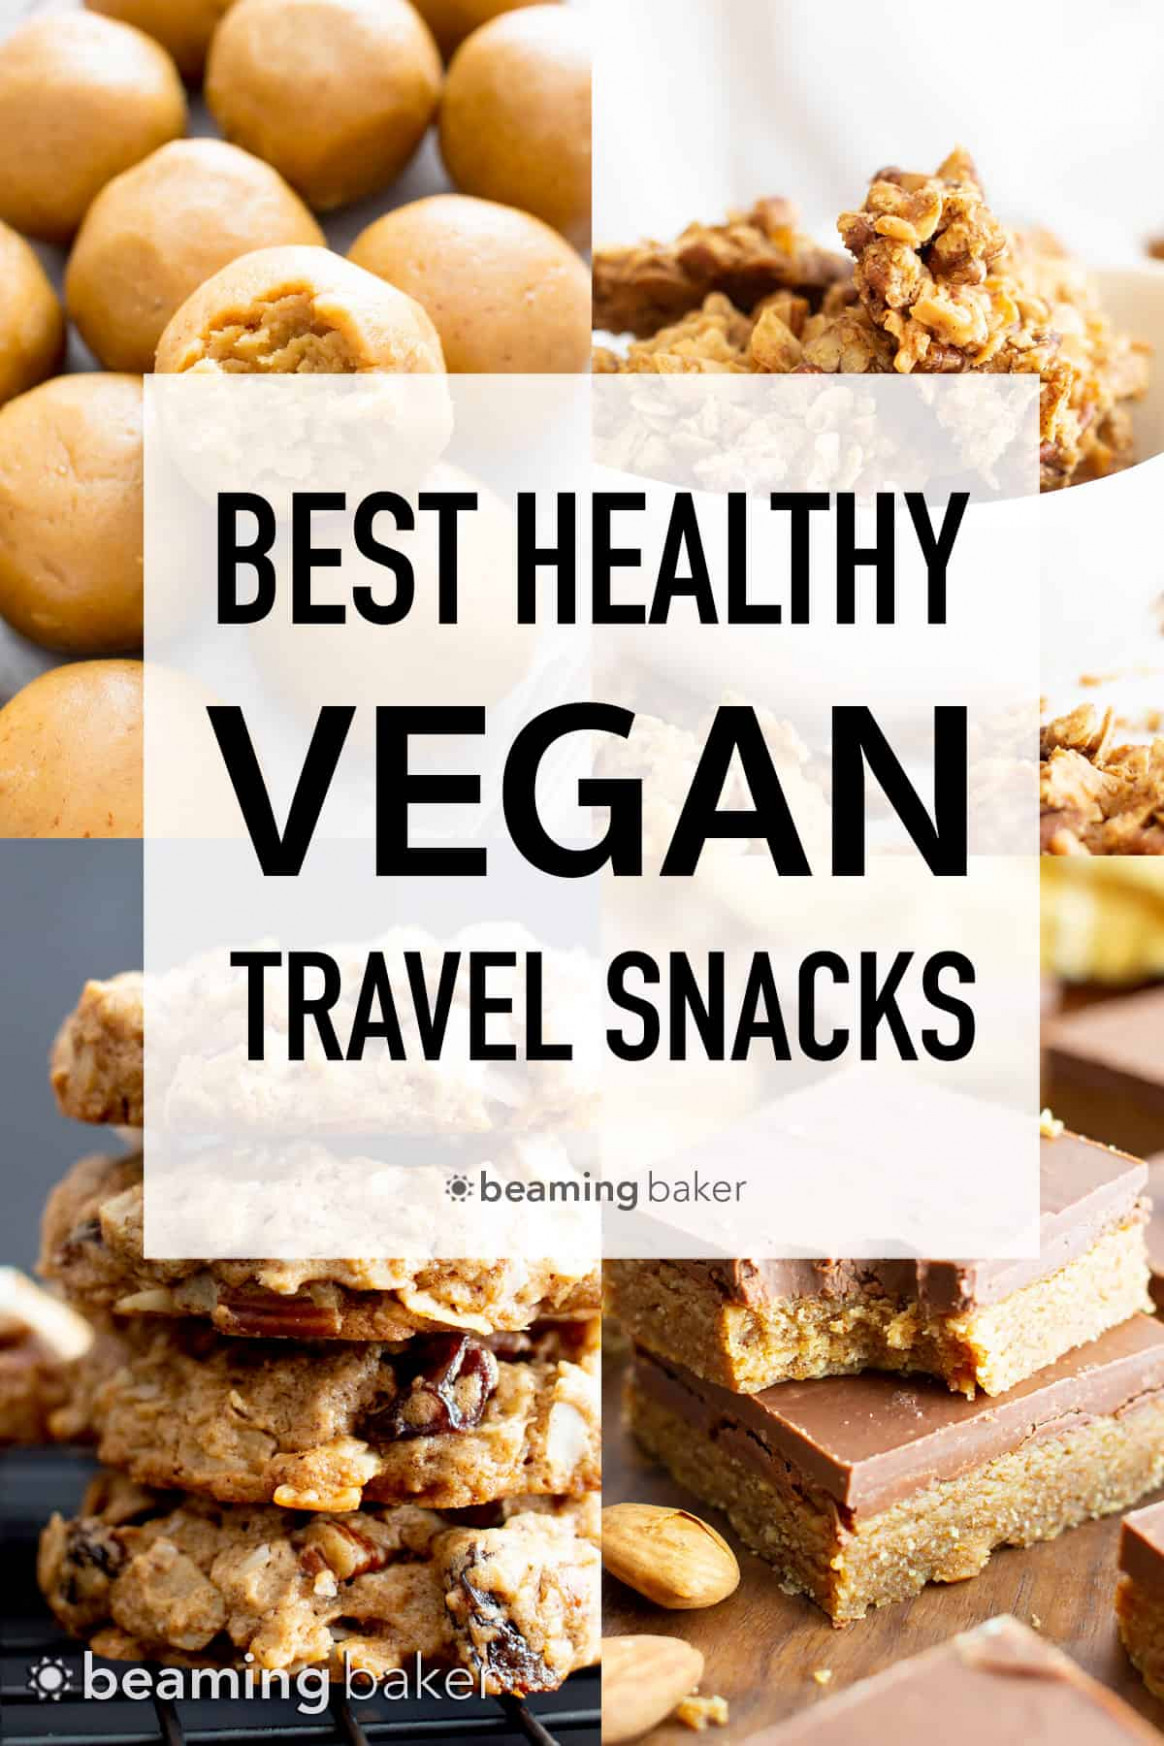 The Best Healthy Vegan Travel Snacks (Recipes, Tips & More ..